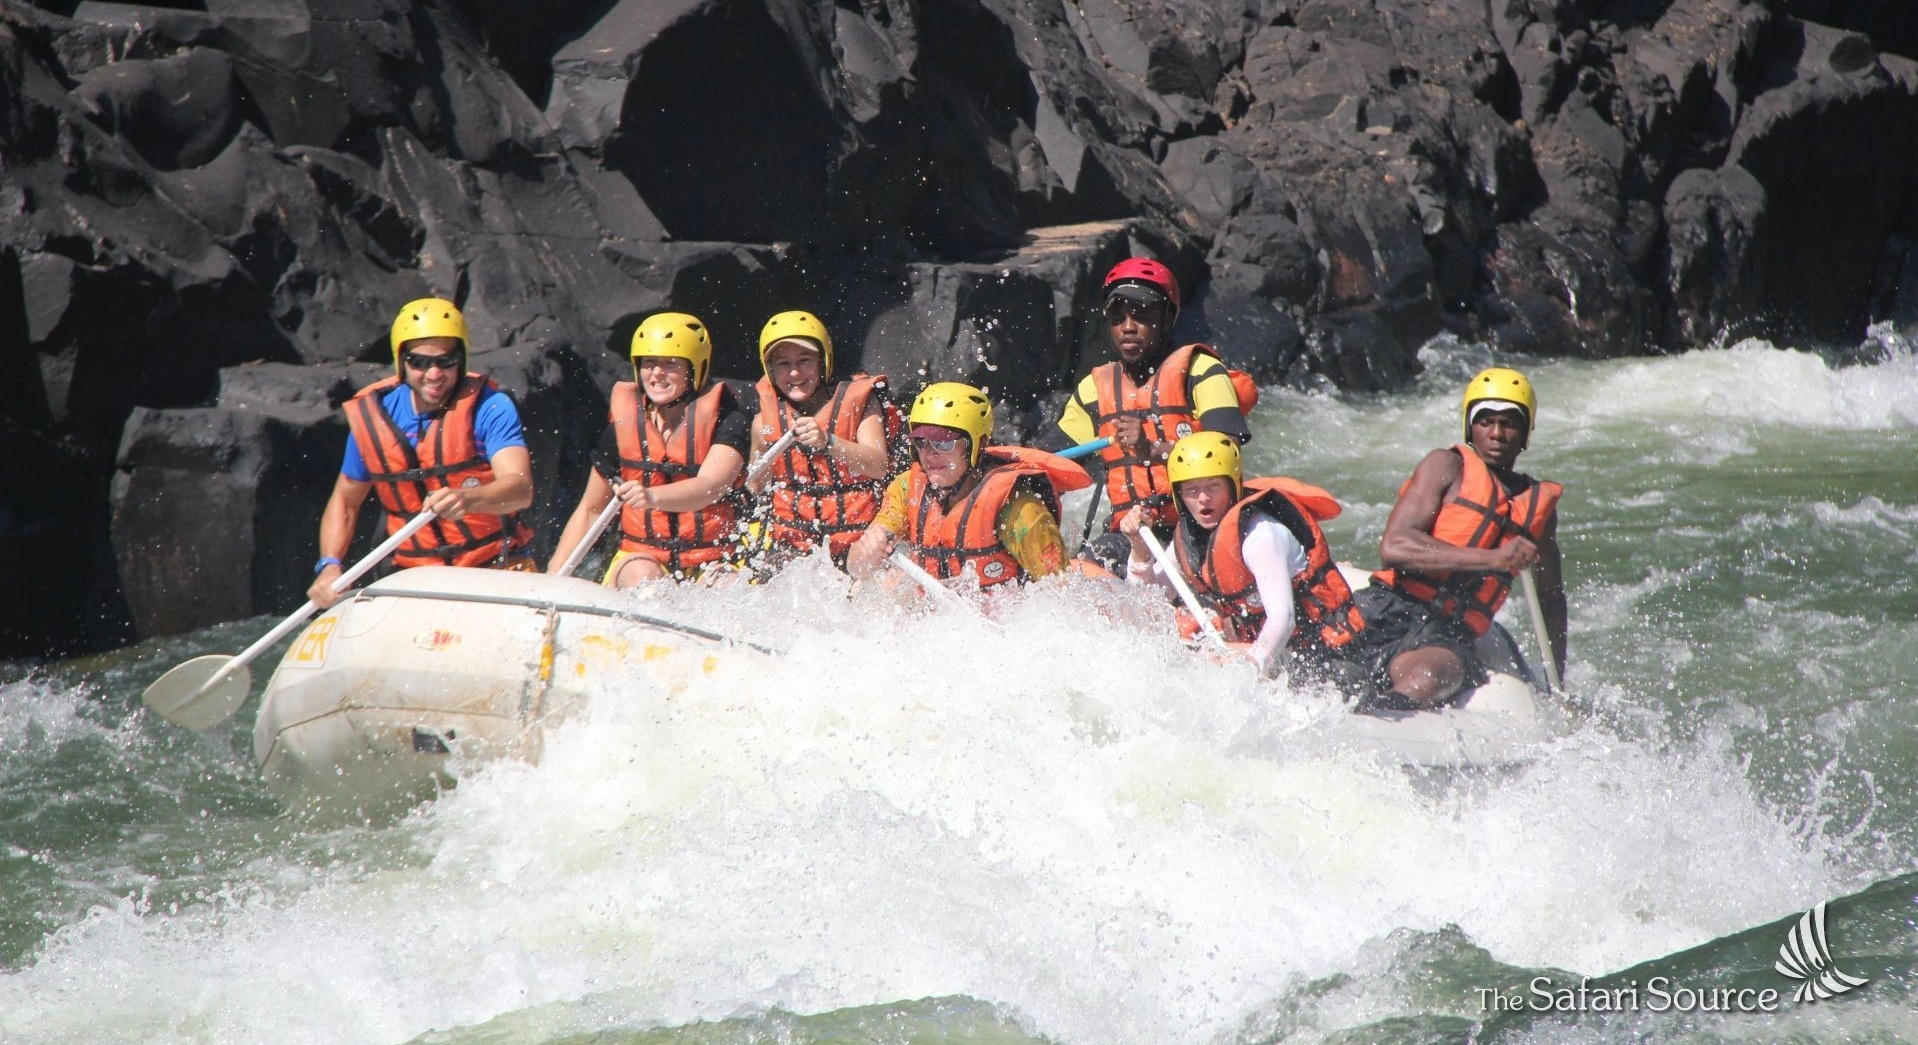 Adventure Travel, White water rafting on the Zambezi River in the gorge below the Victoria Falls, Zimbabwe